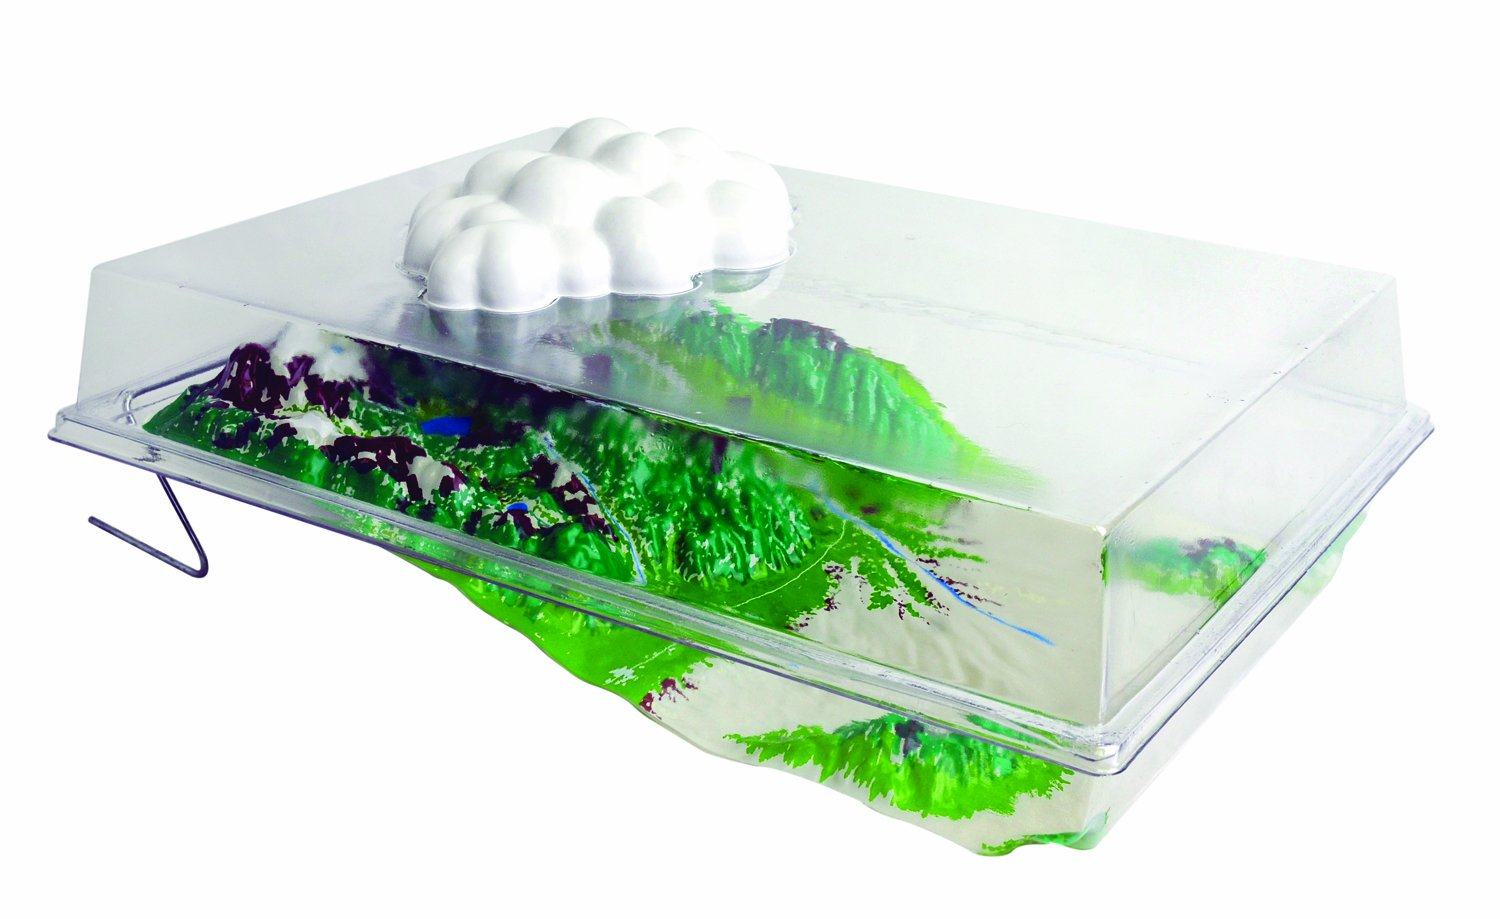 American Educational Spanish Water Cycle Model Activity Set